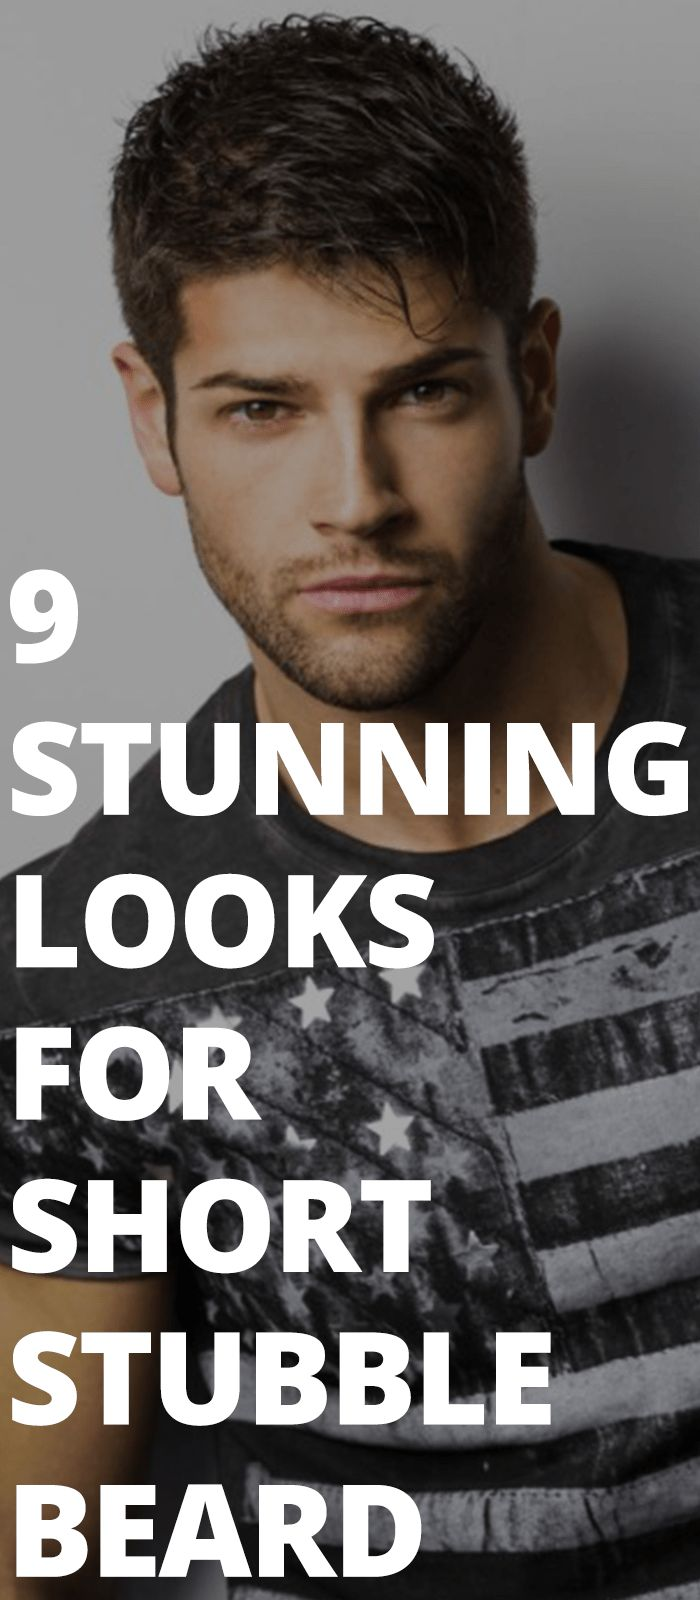 14 Perfect Looks For The Most Popular Beard Style – Short Stubble Beard Style